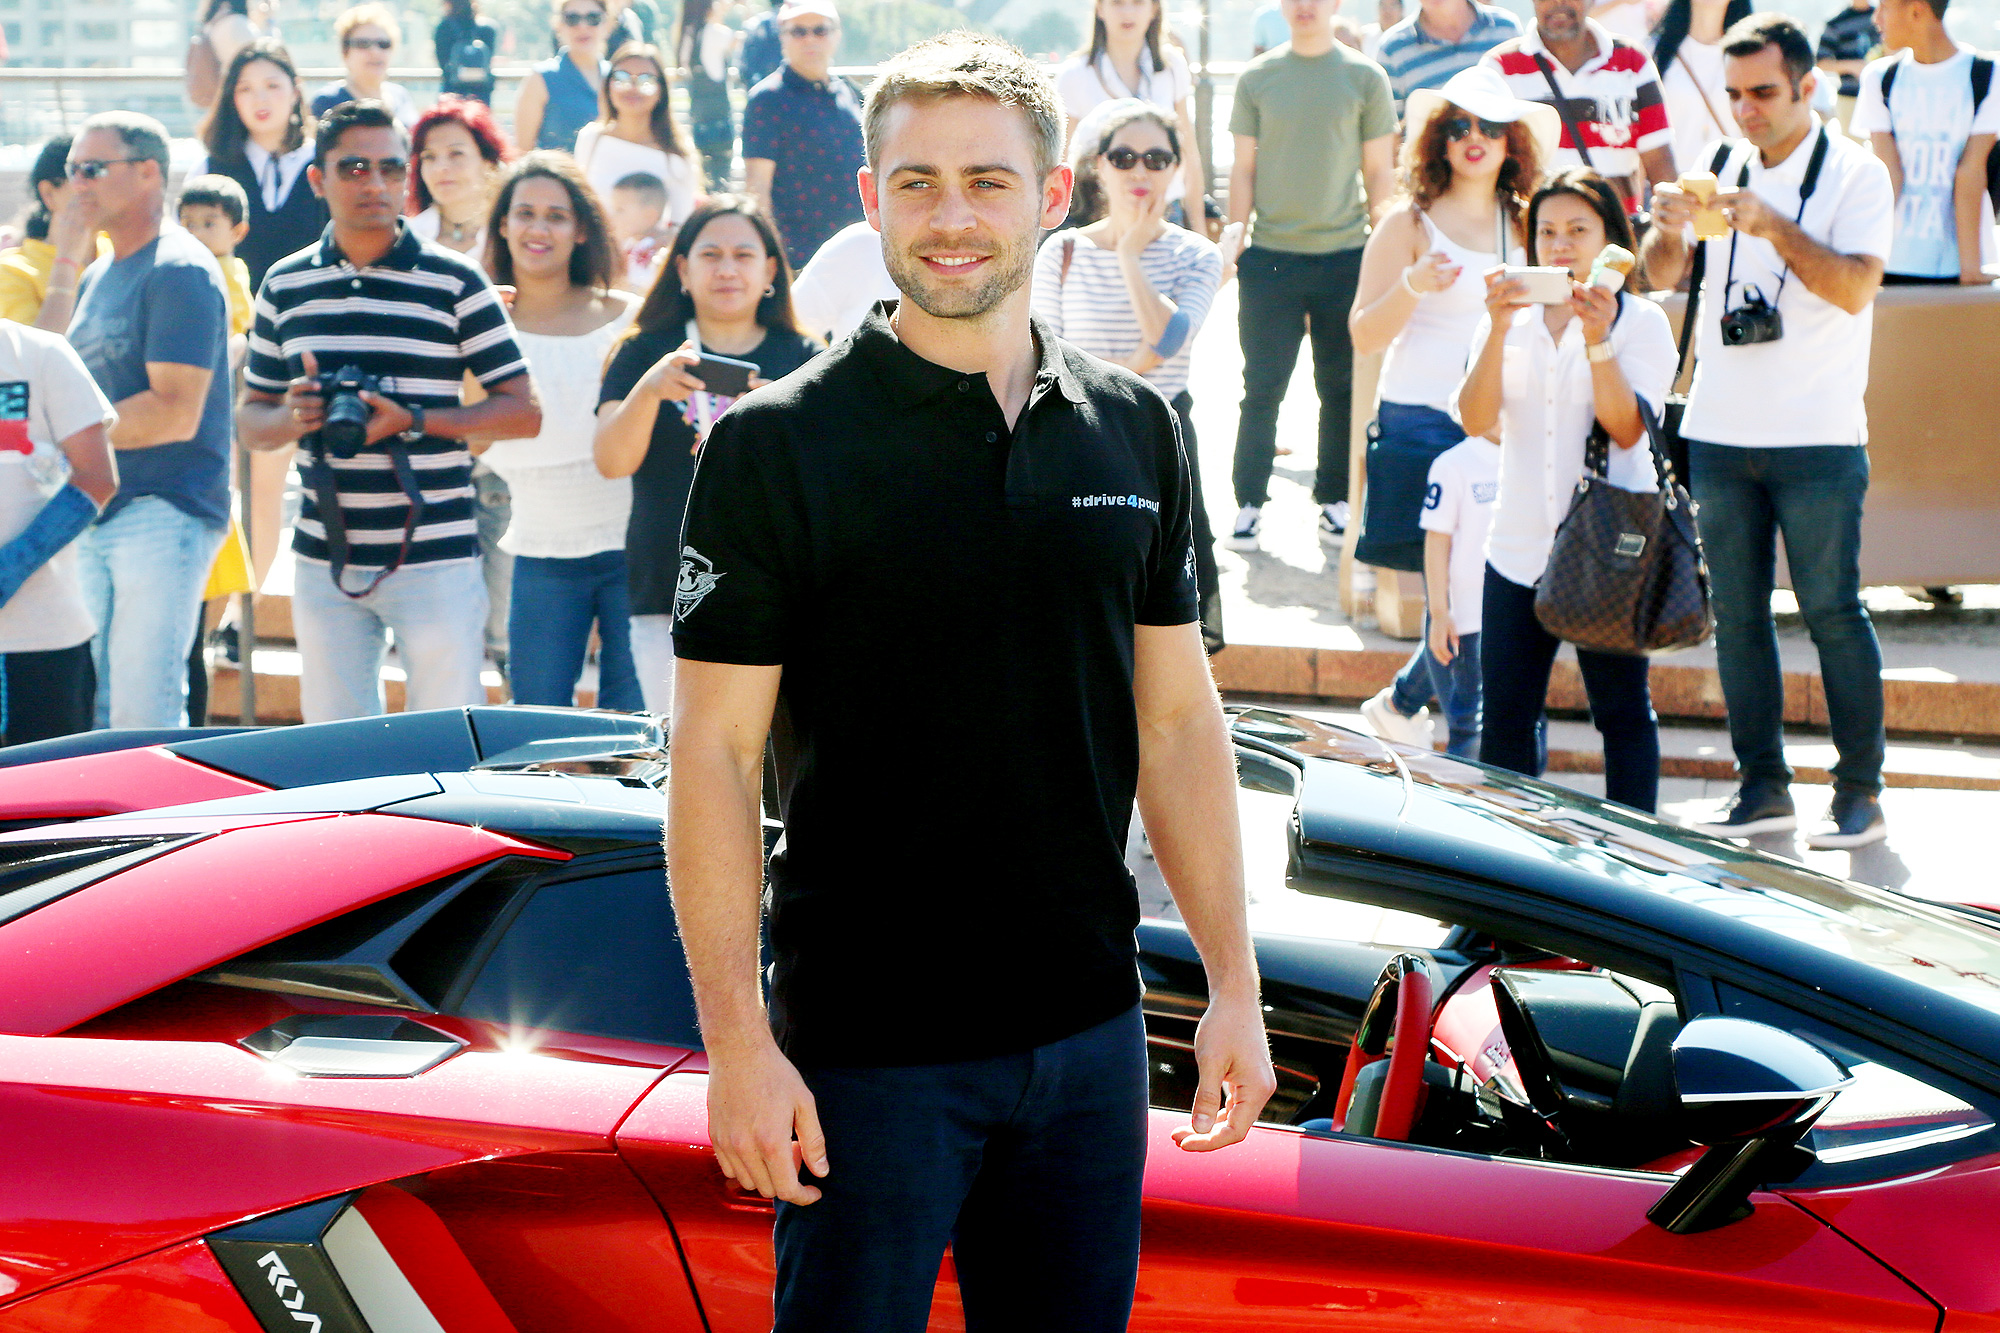 Cody Walker Makes an Appearance at the Sydney Opera House